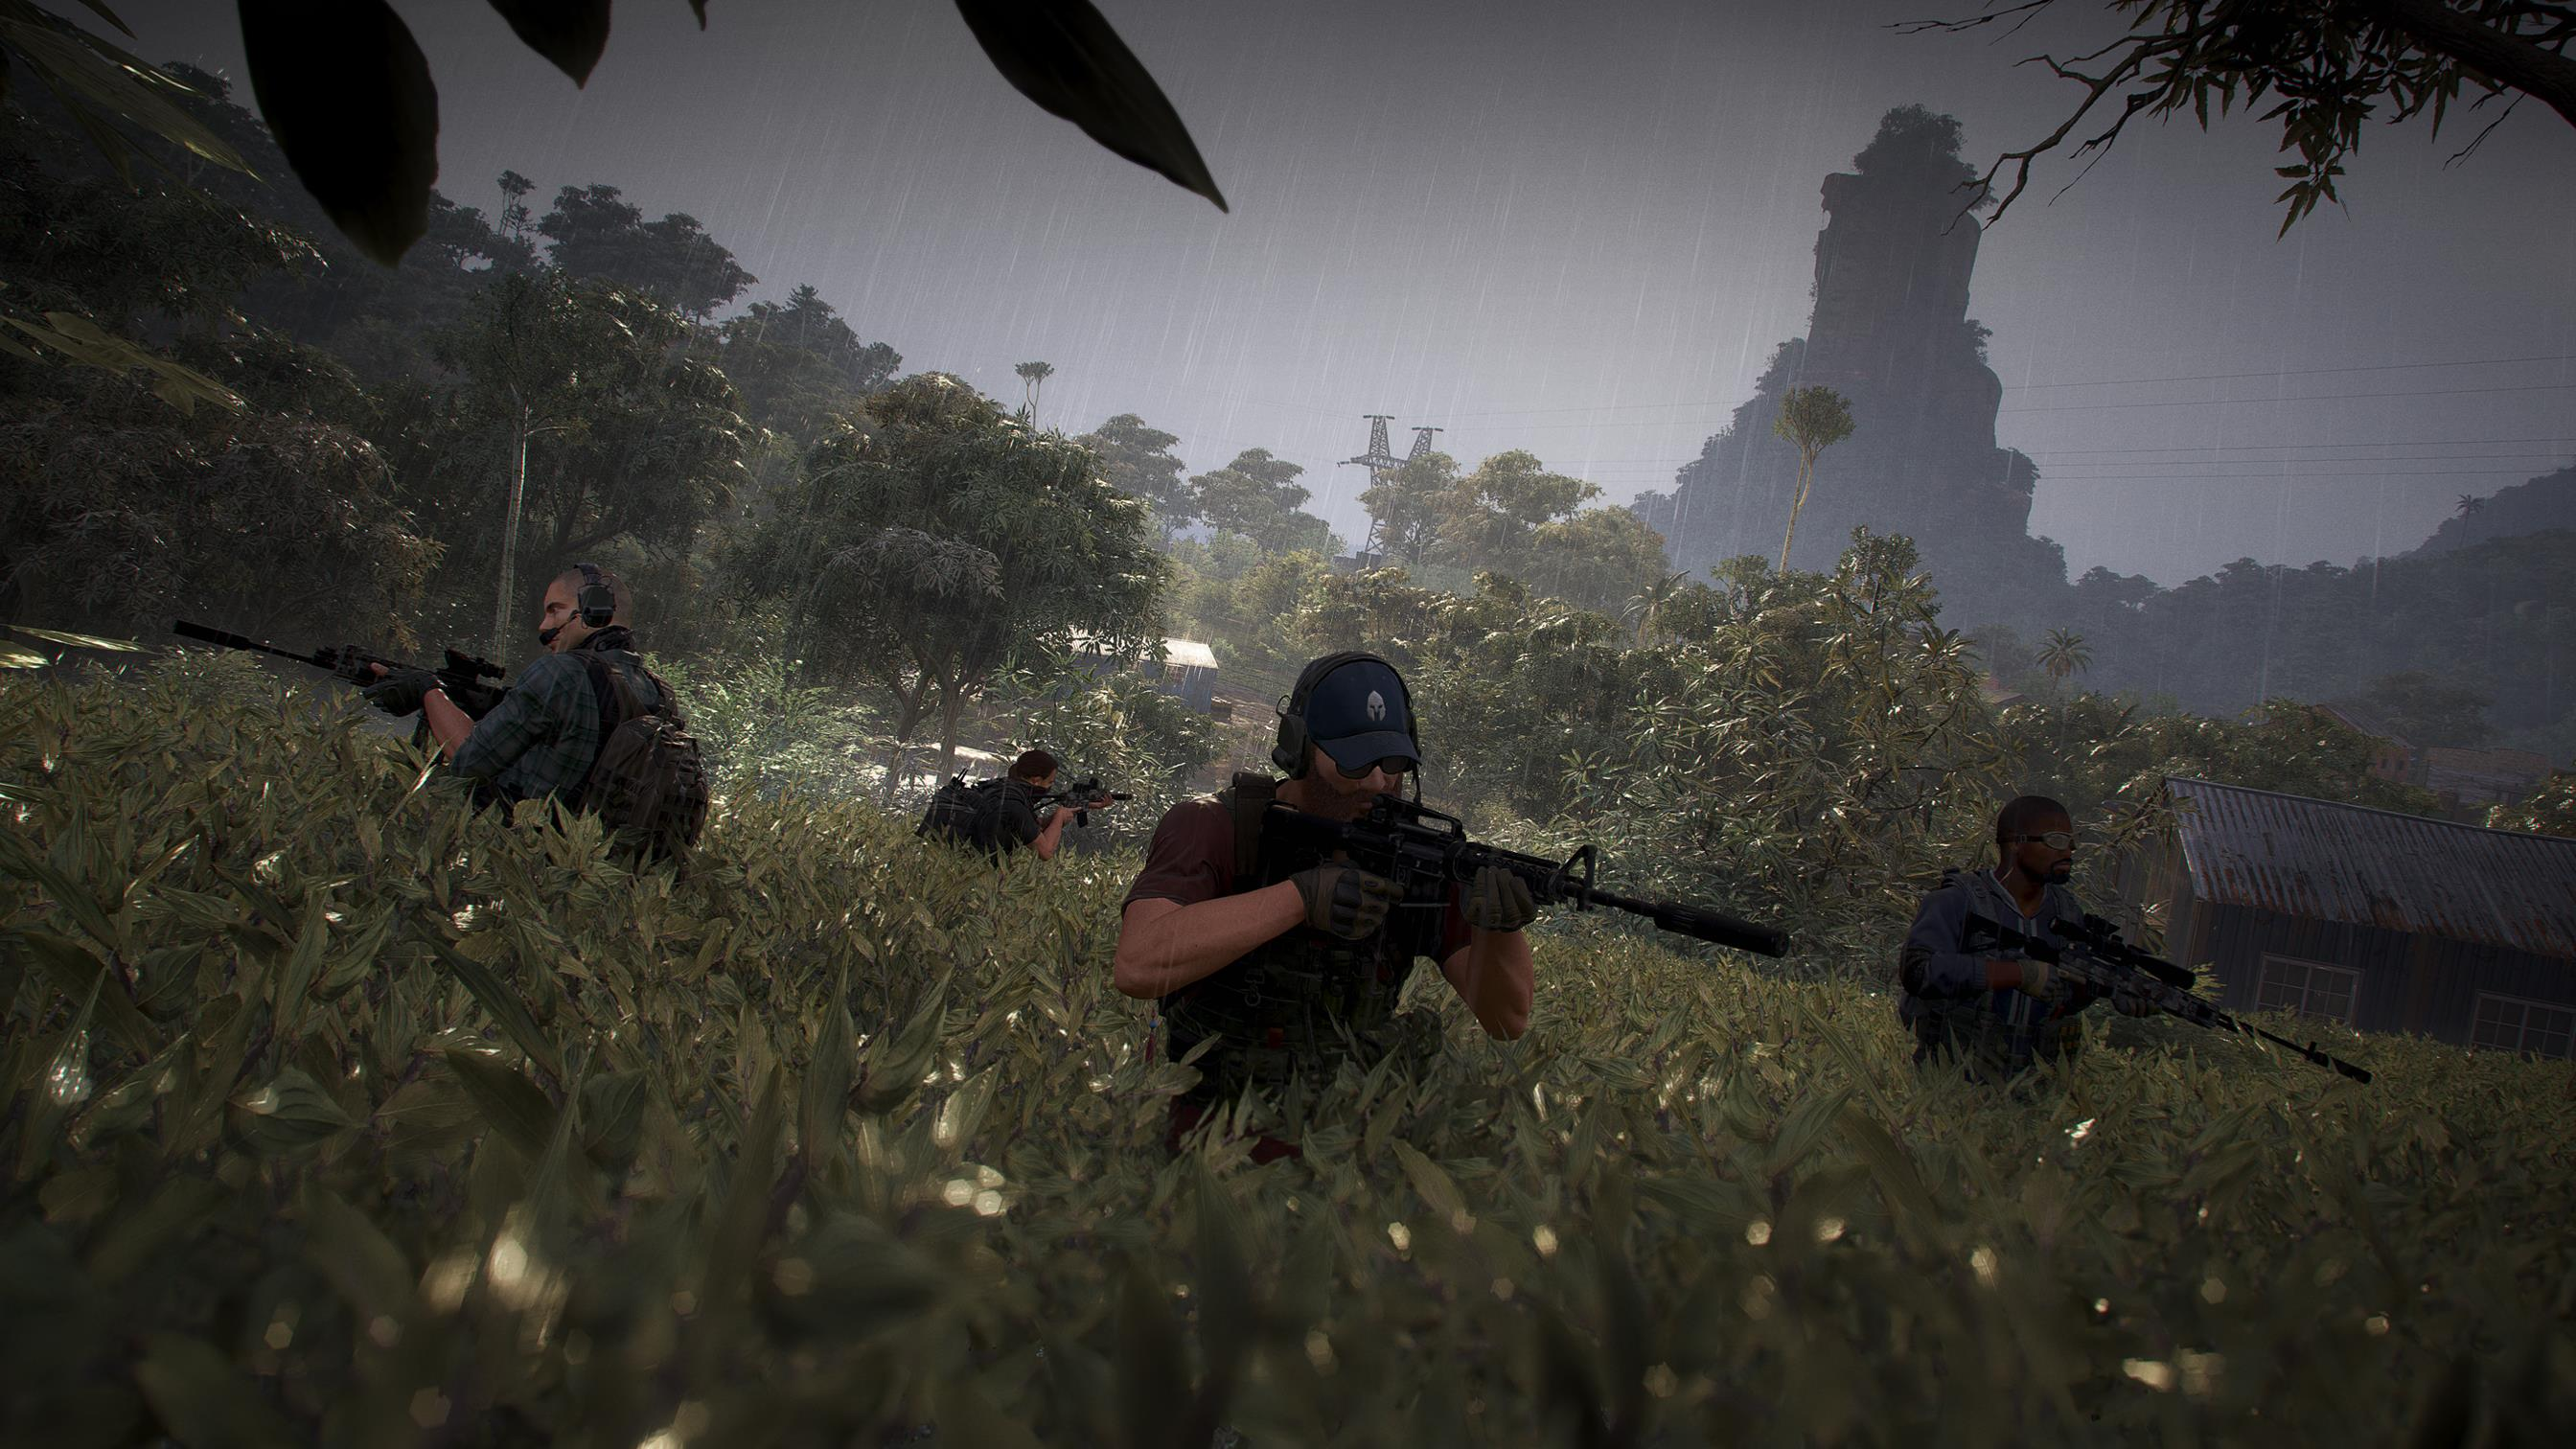 Ghost Recon Wildlands is getting a permadeath mode